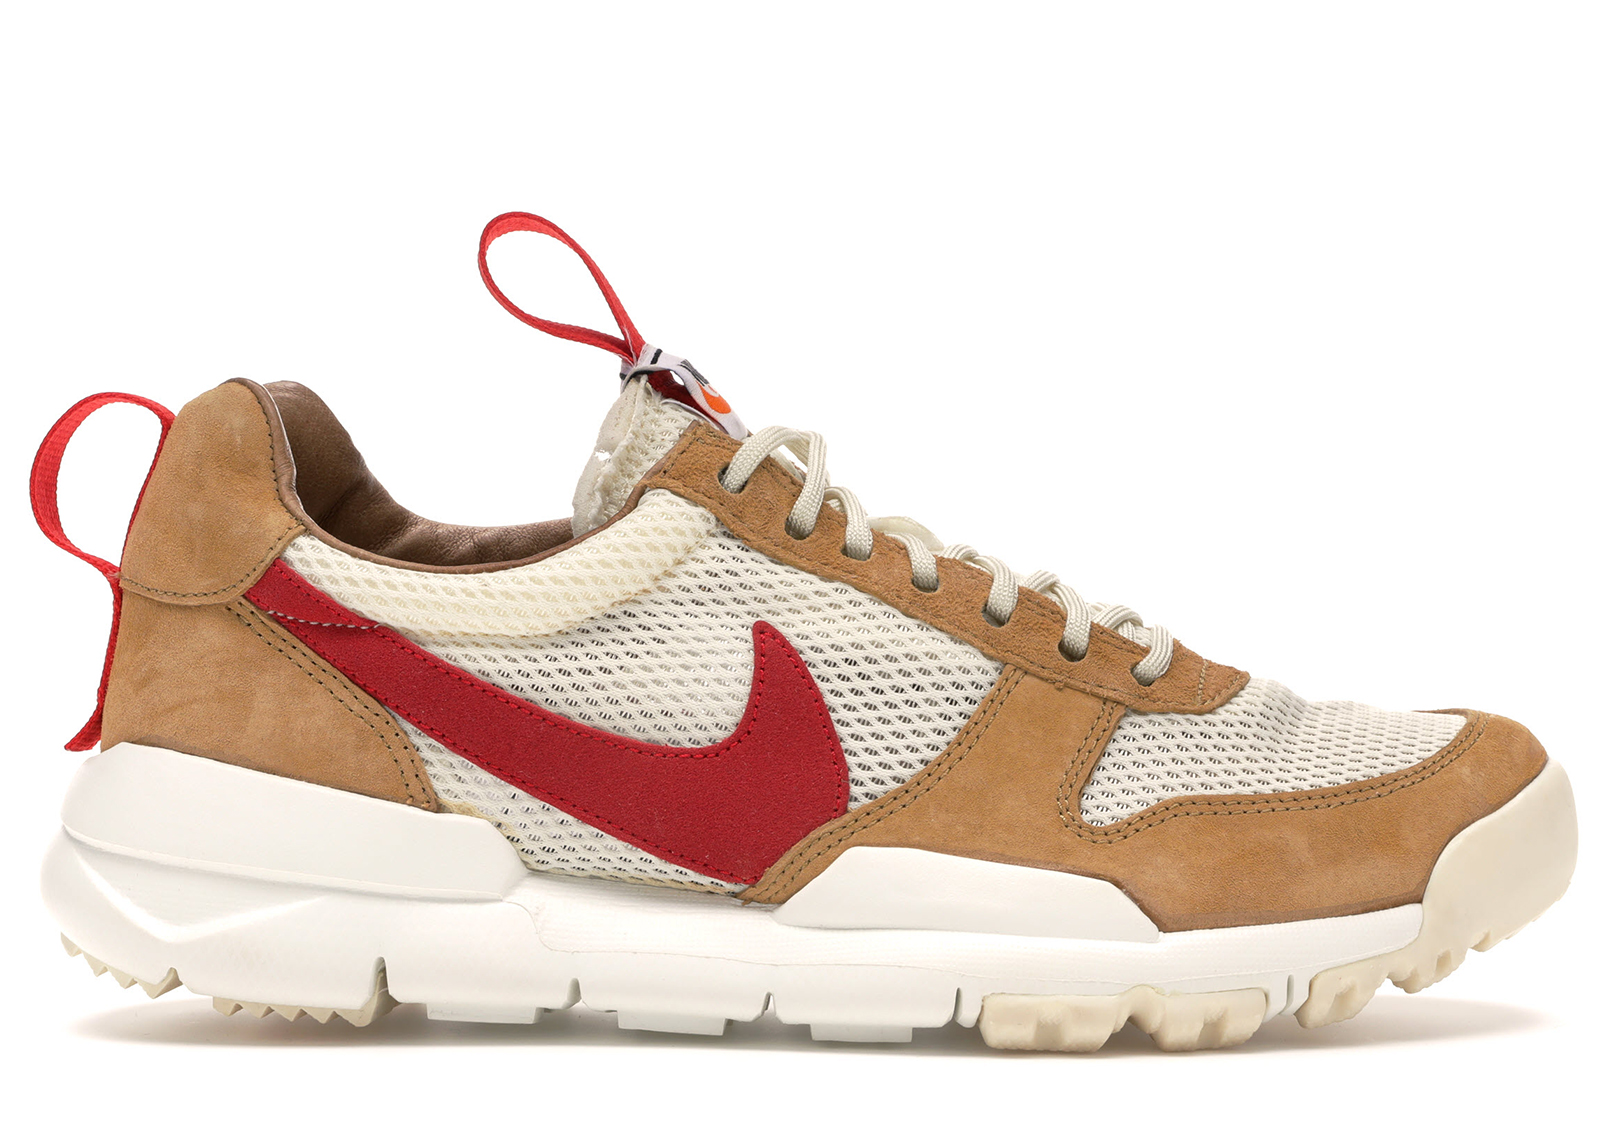 release date 53ffa d33d8 HypeAnalyzer · NikeCraft Mars Yard Shoe 2.0 Tom Sachs Space Camp